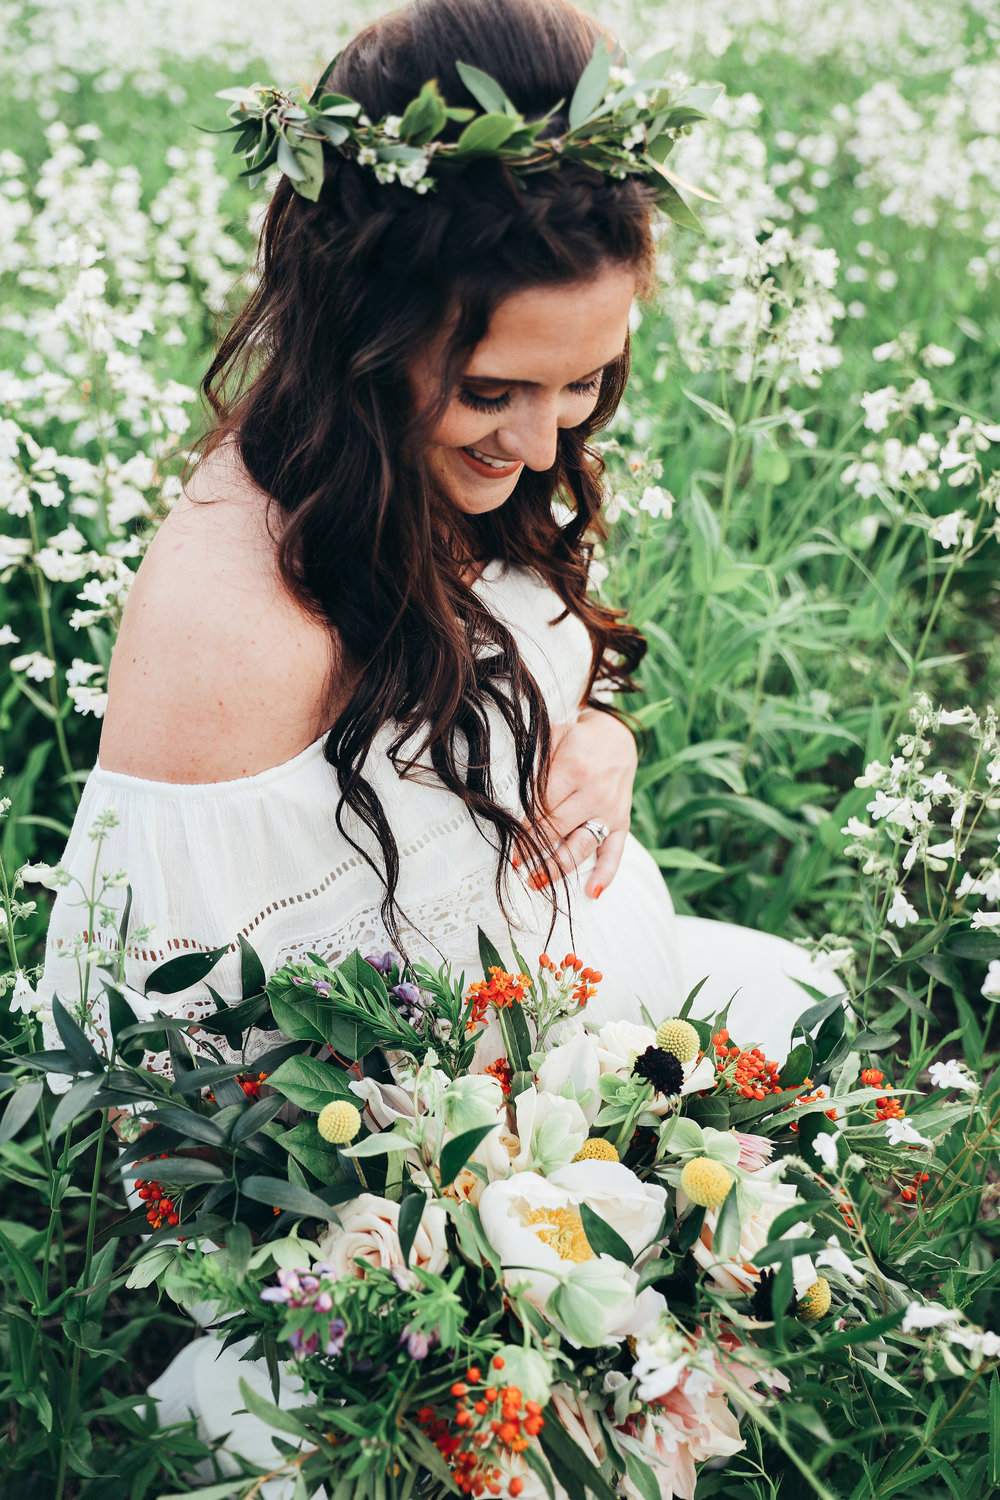 boho maternity photo session louisville kentucky boho mama to be by photographer Chelcey Tate